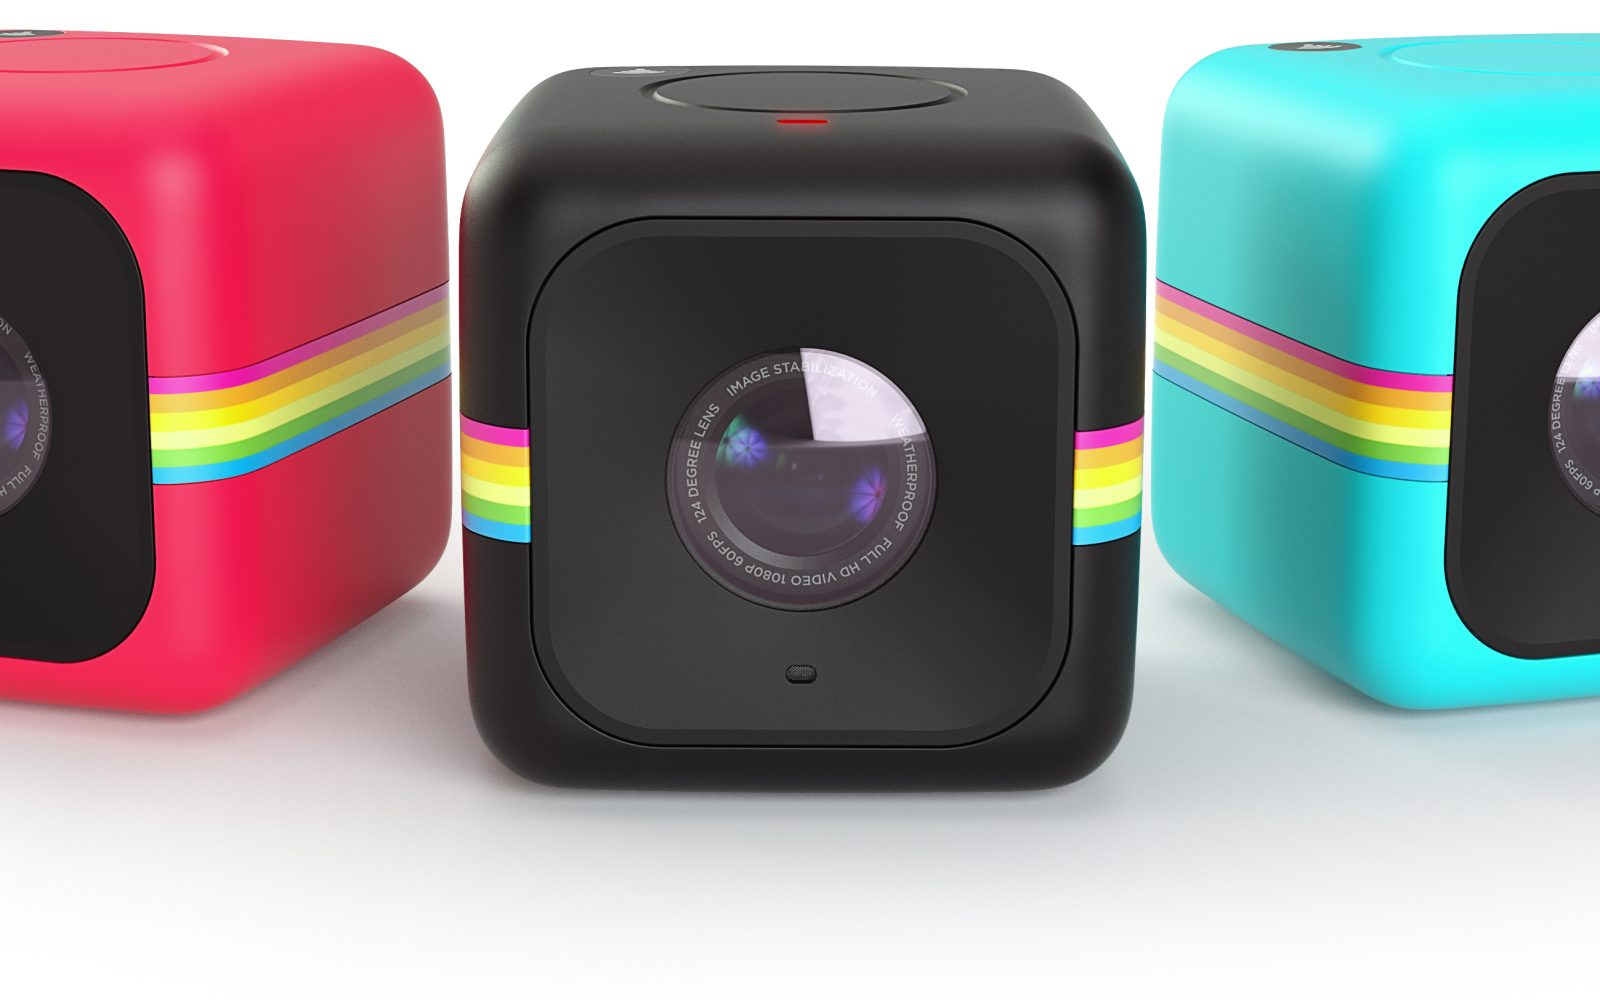 Polaroid s mini 1-inch 1080p action camera refreshed with Wi-Fi integration  for iOS and Android cb76c7c3c5